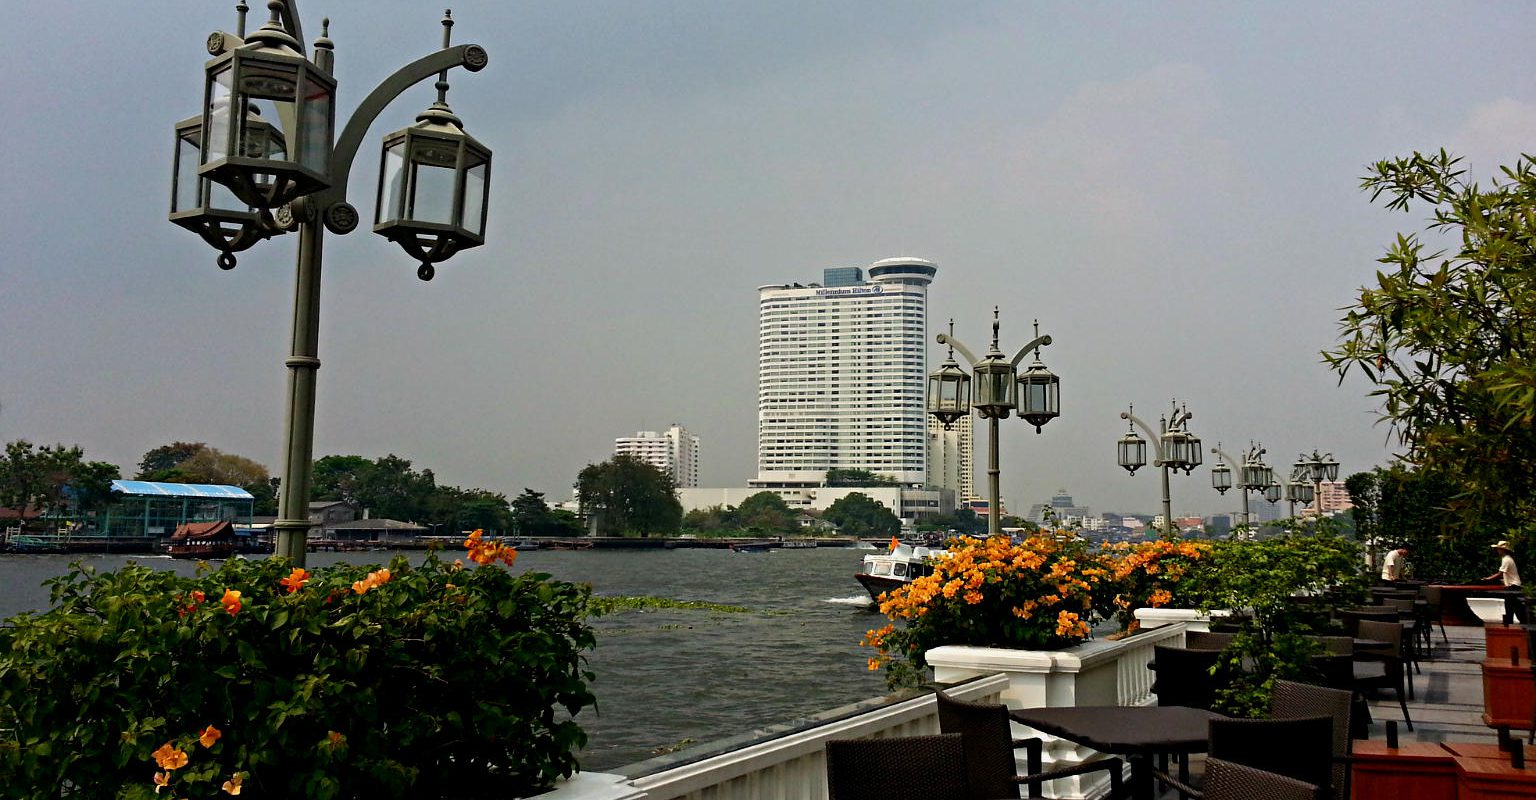 Terrace of the Mandarin Hotel along the river of Bangkok, Thailand